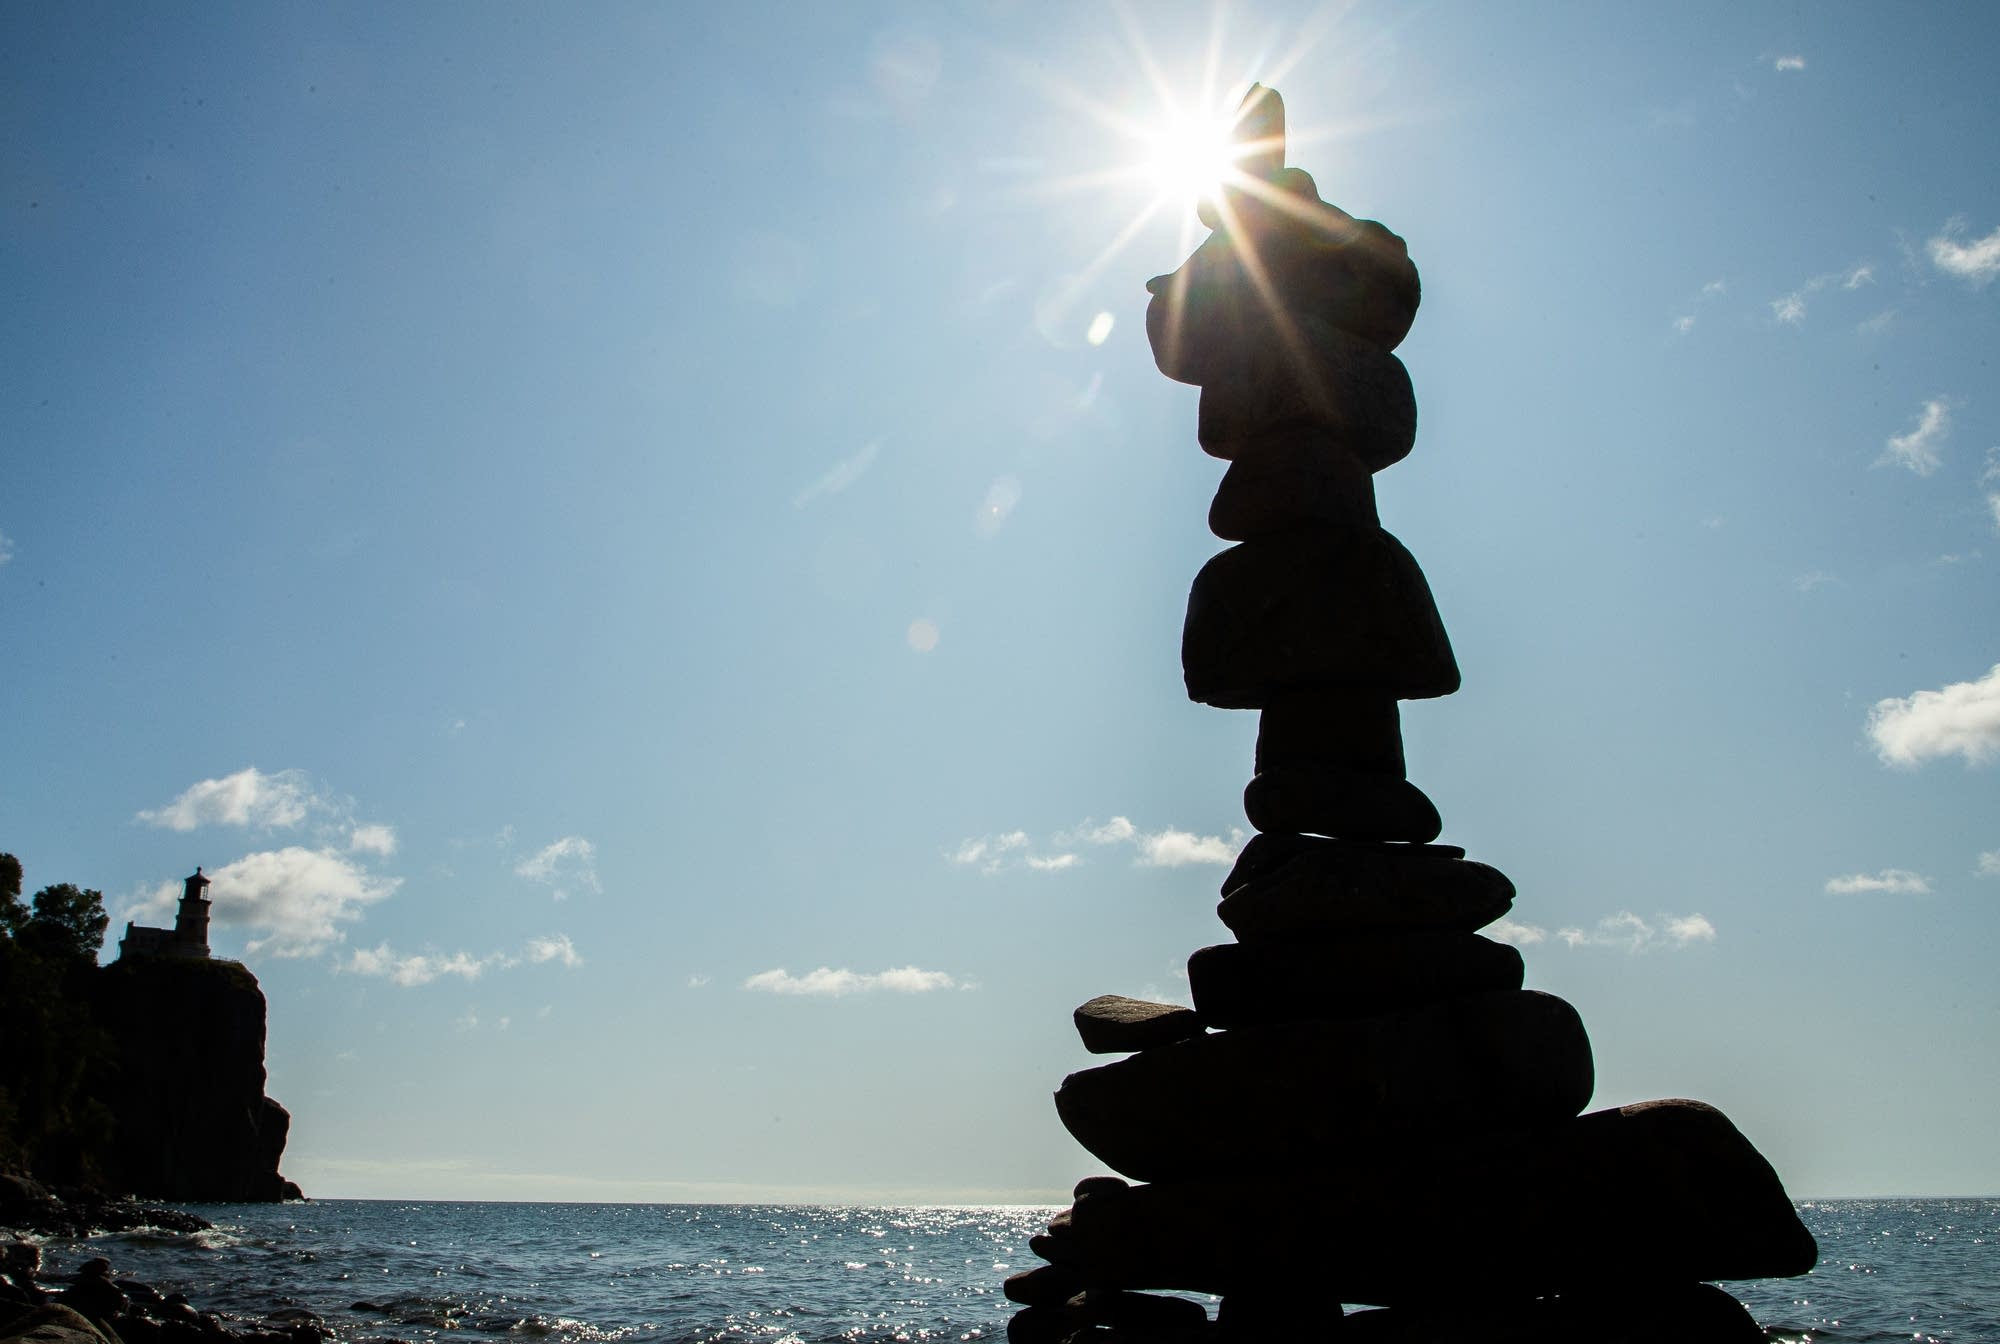 A tall stack of rocks is silhouetted against a blue sky.